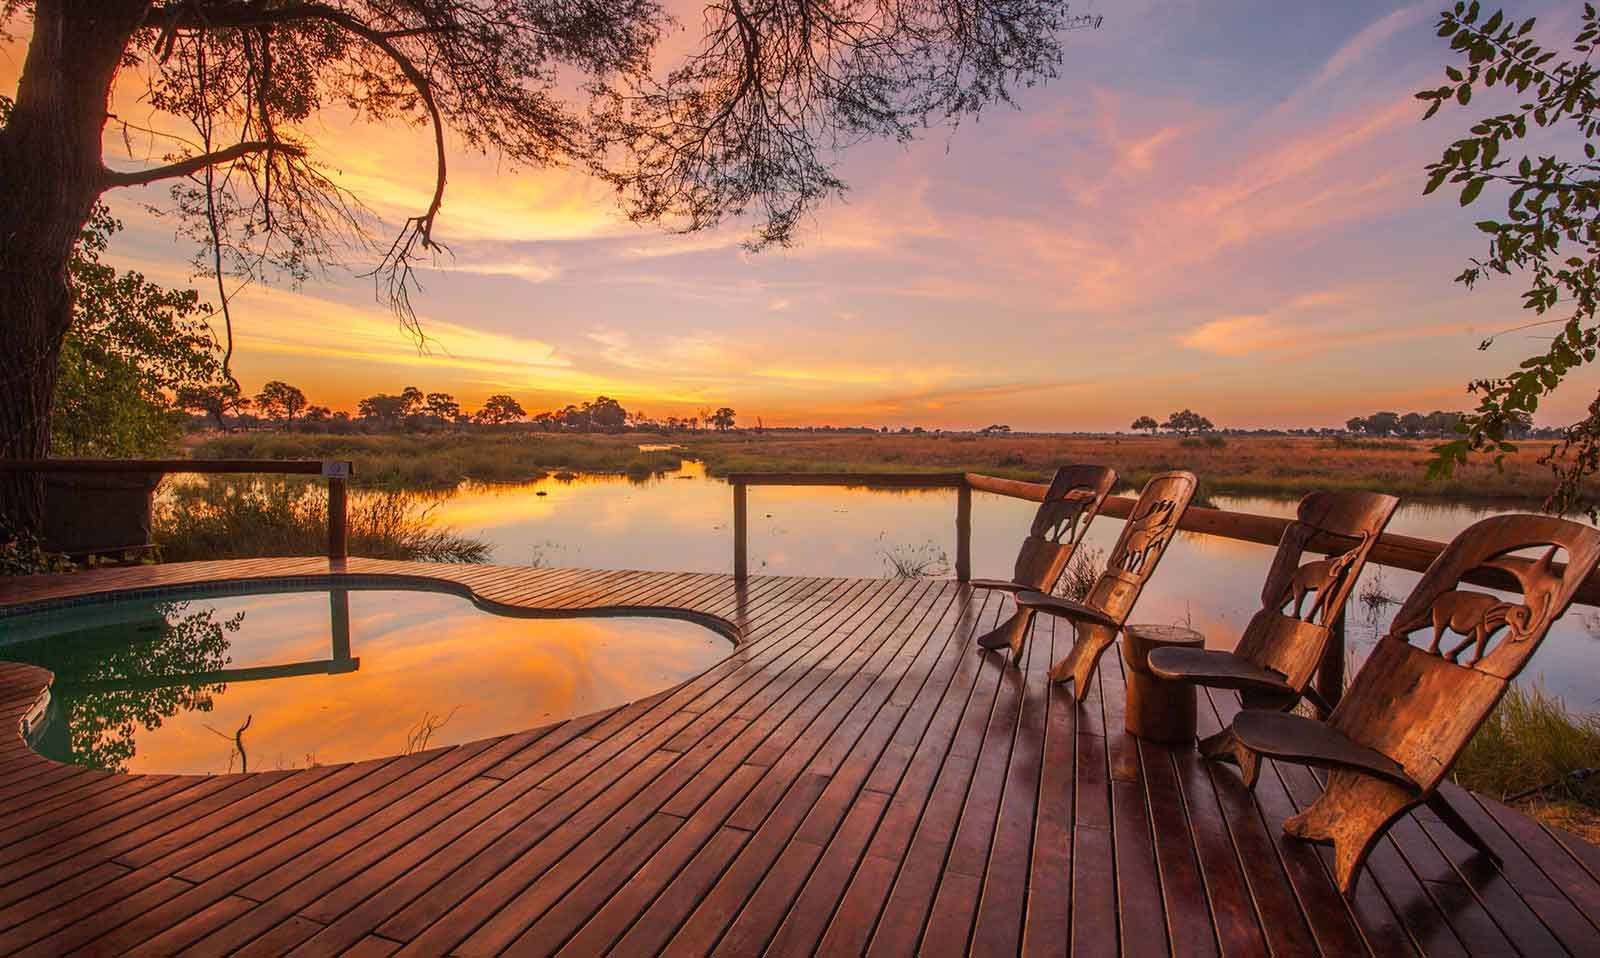 Discover Northern Botswana on Safari